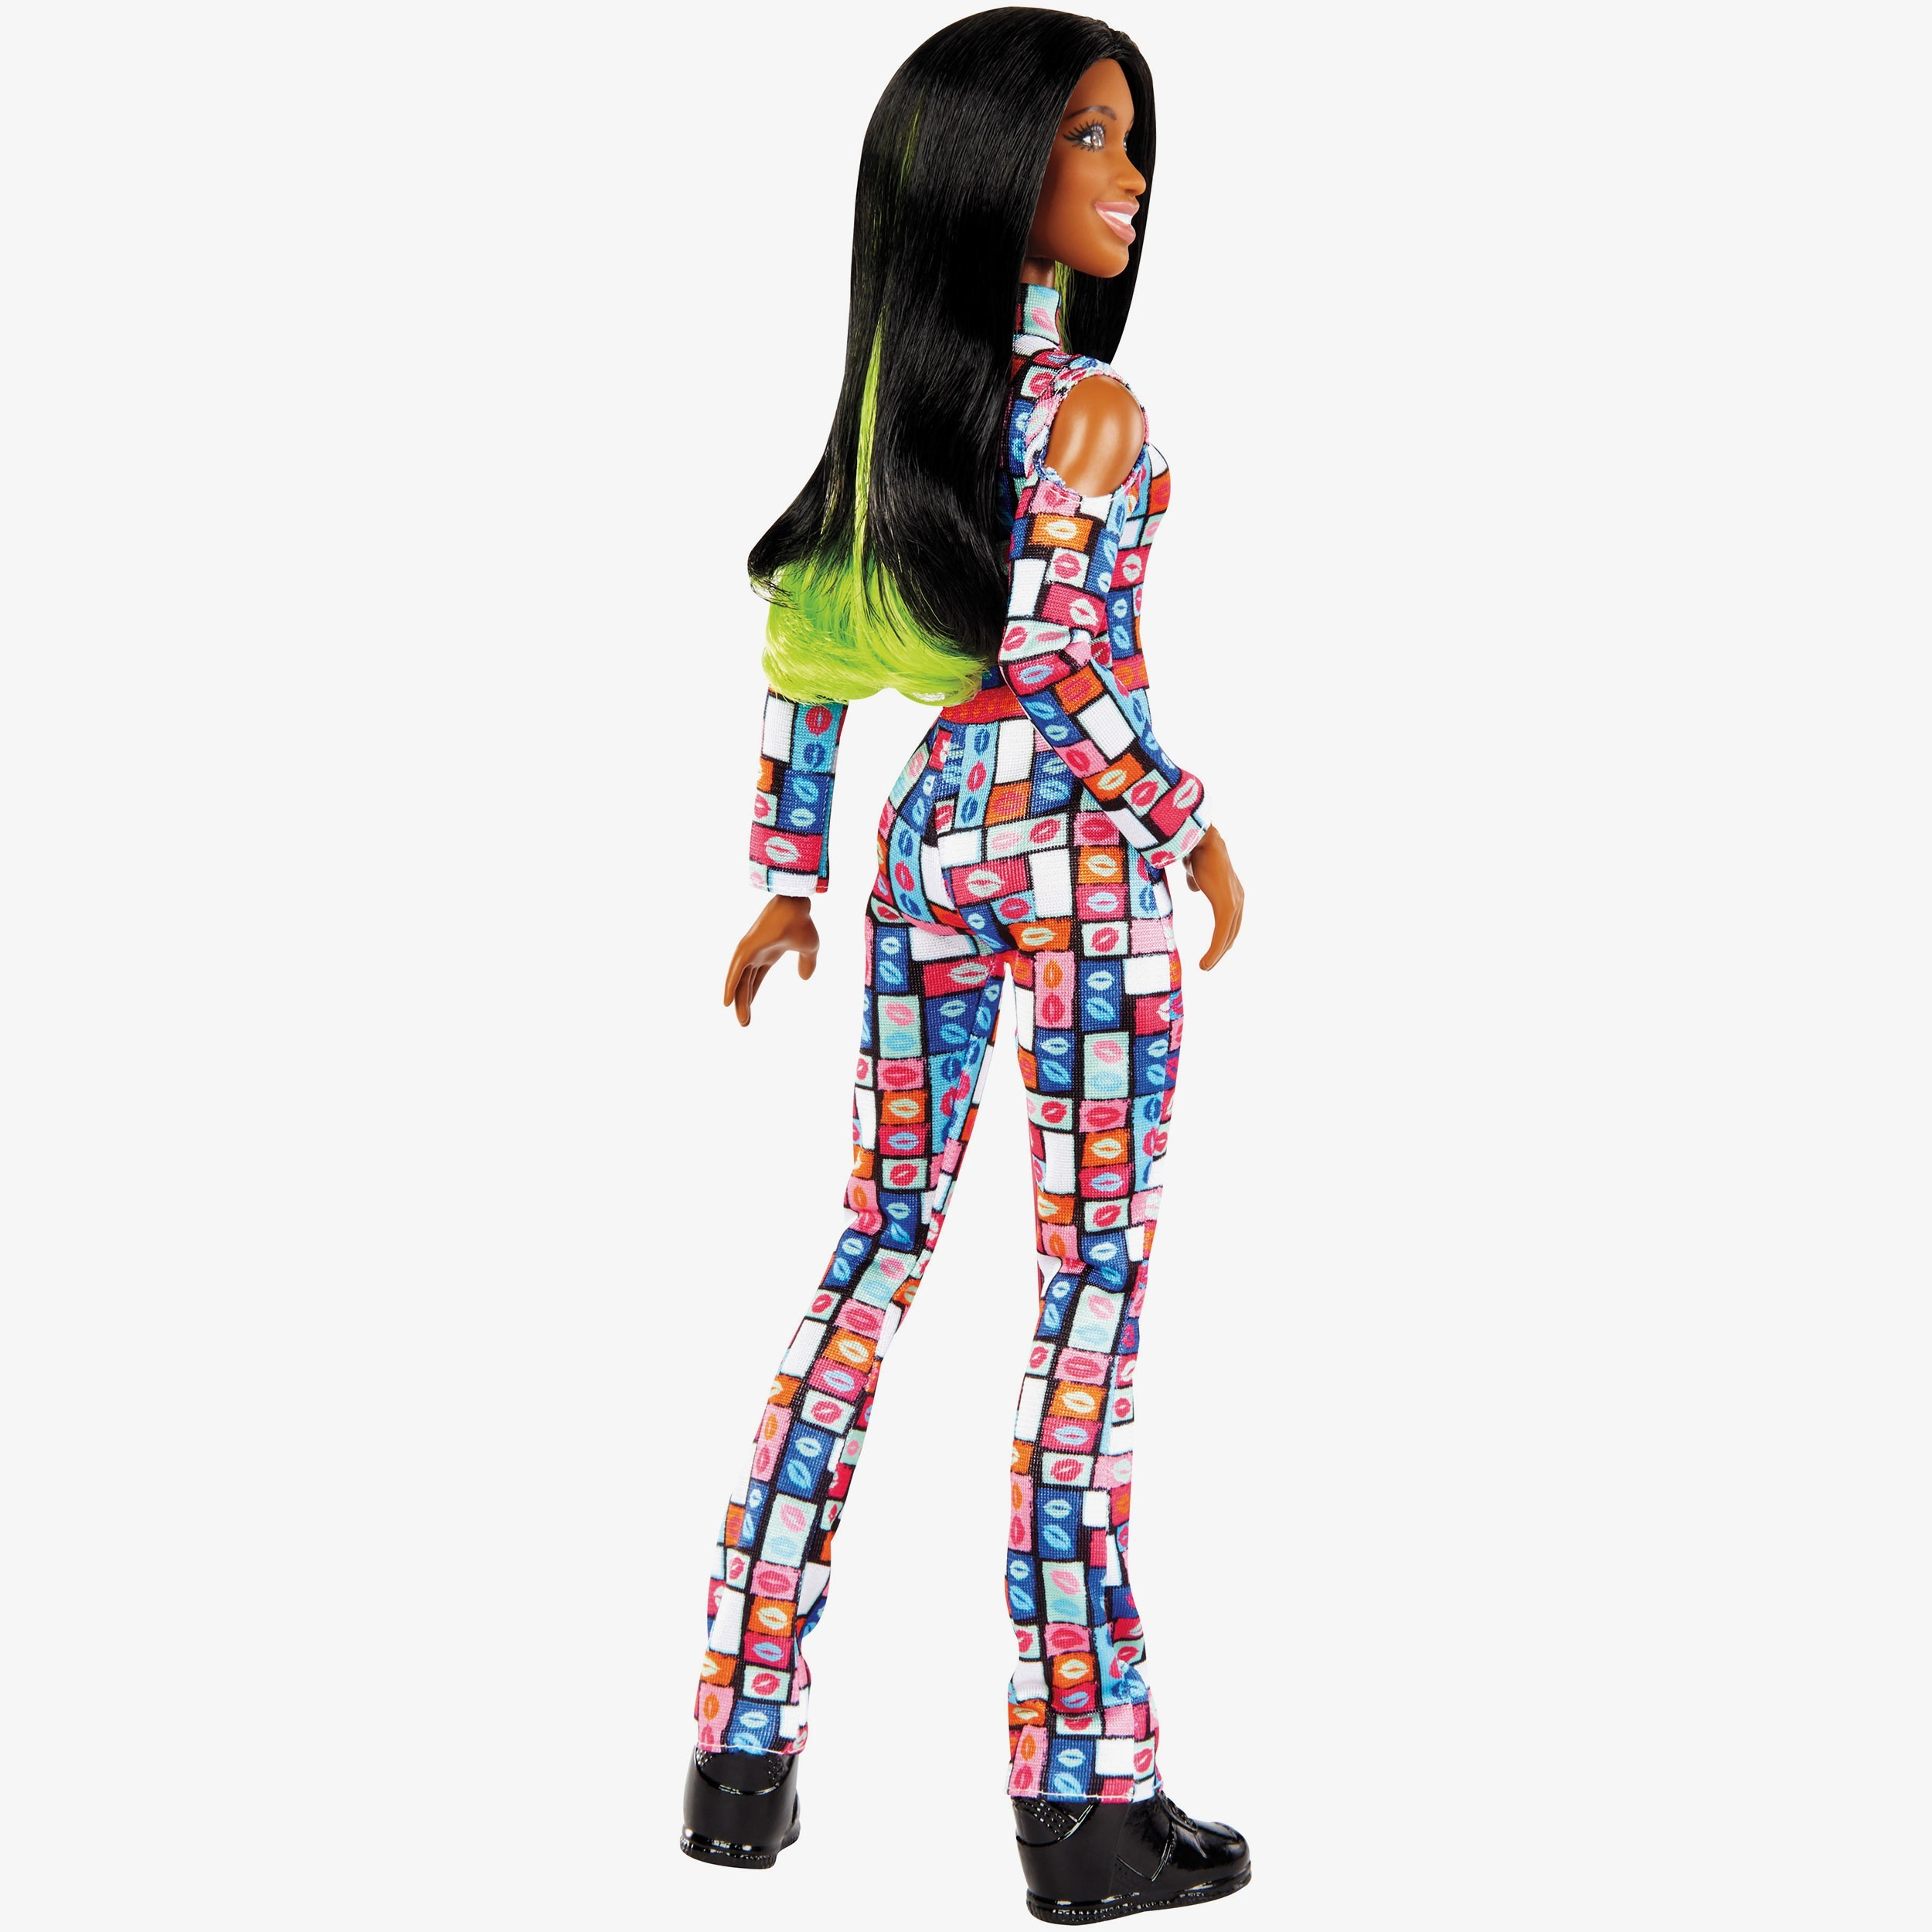 Naomi 12 Inch Wwe Fashion Doll With Exra Accessories